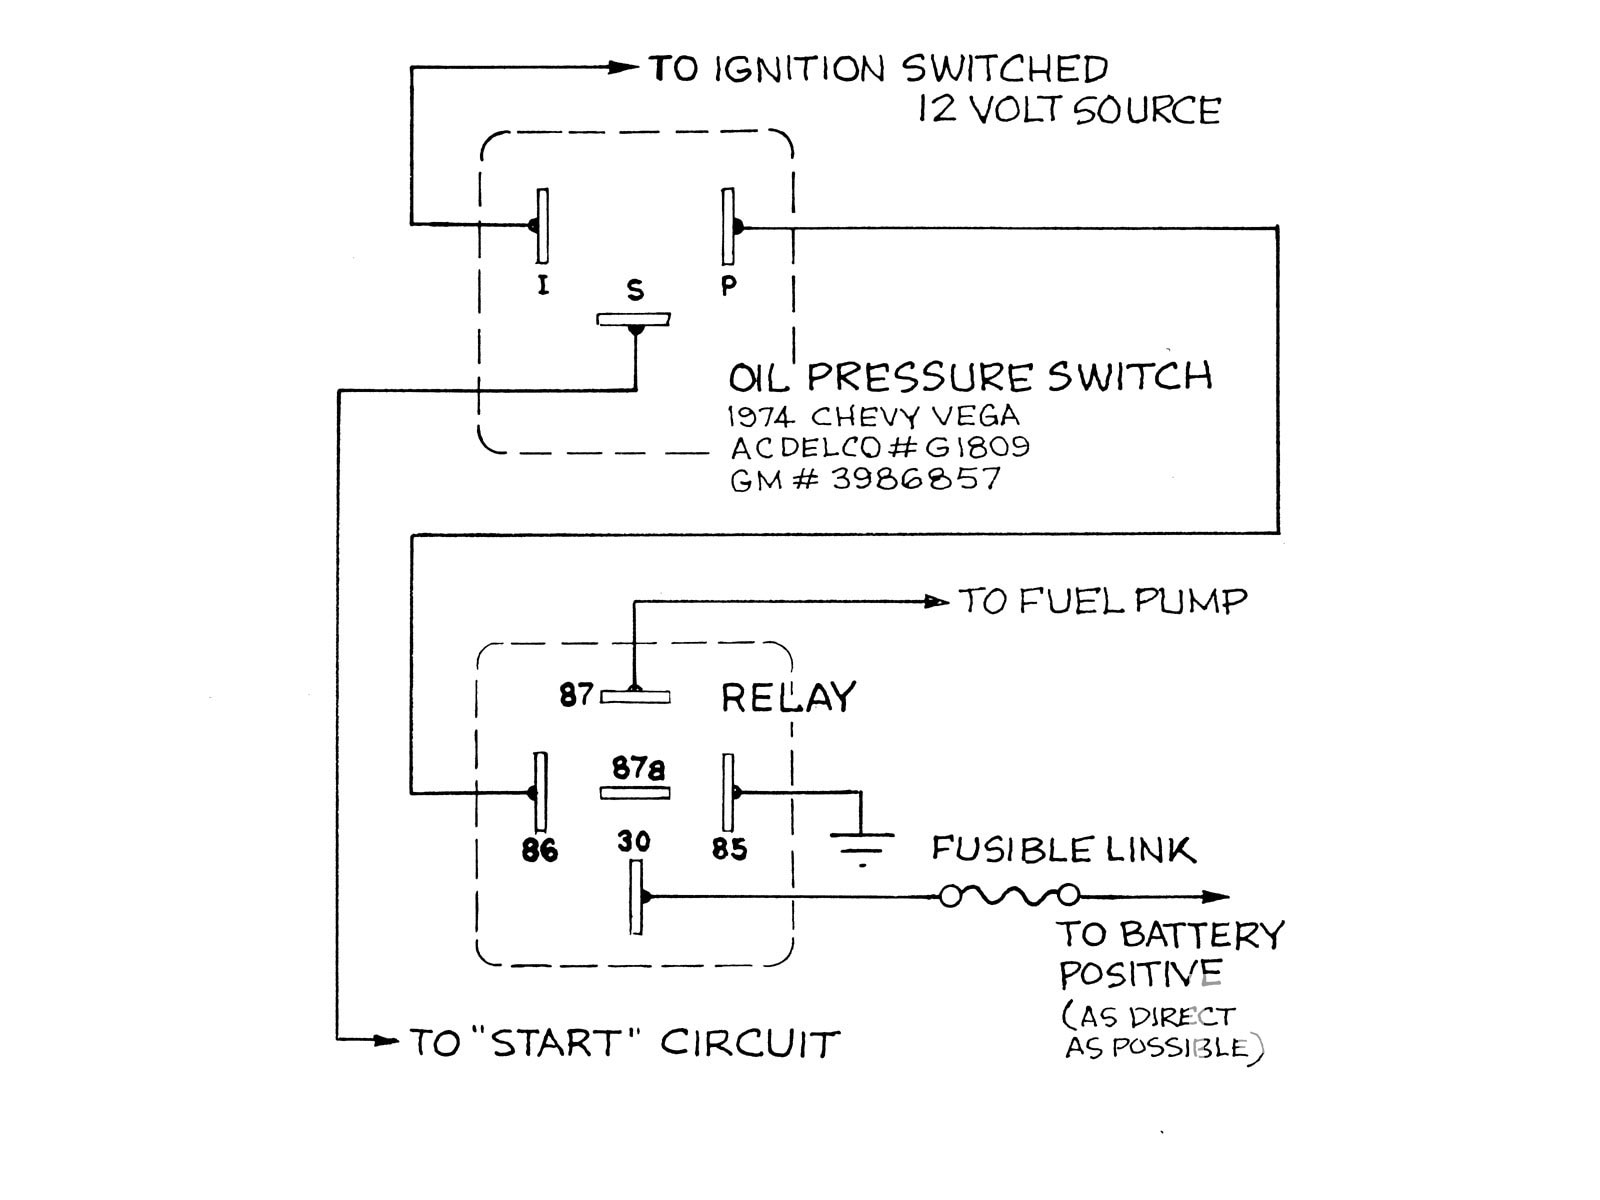 hight resolution of 12 volt fuel pump relay wiring diagram